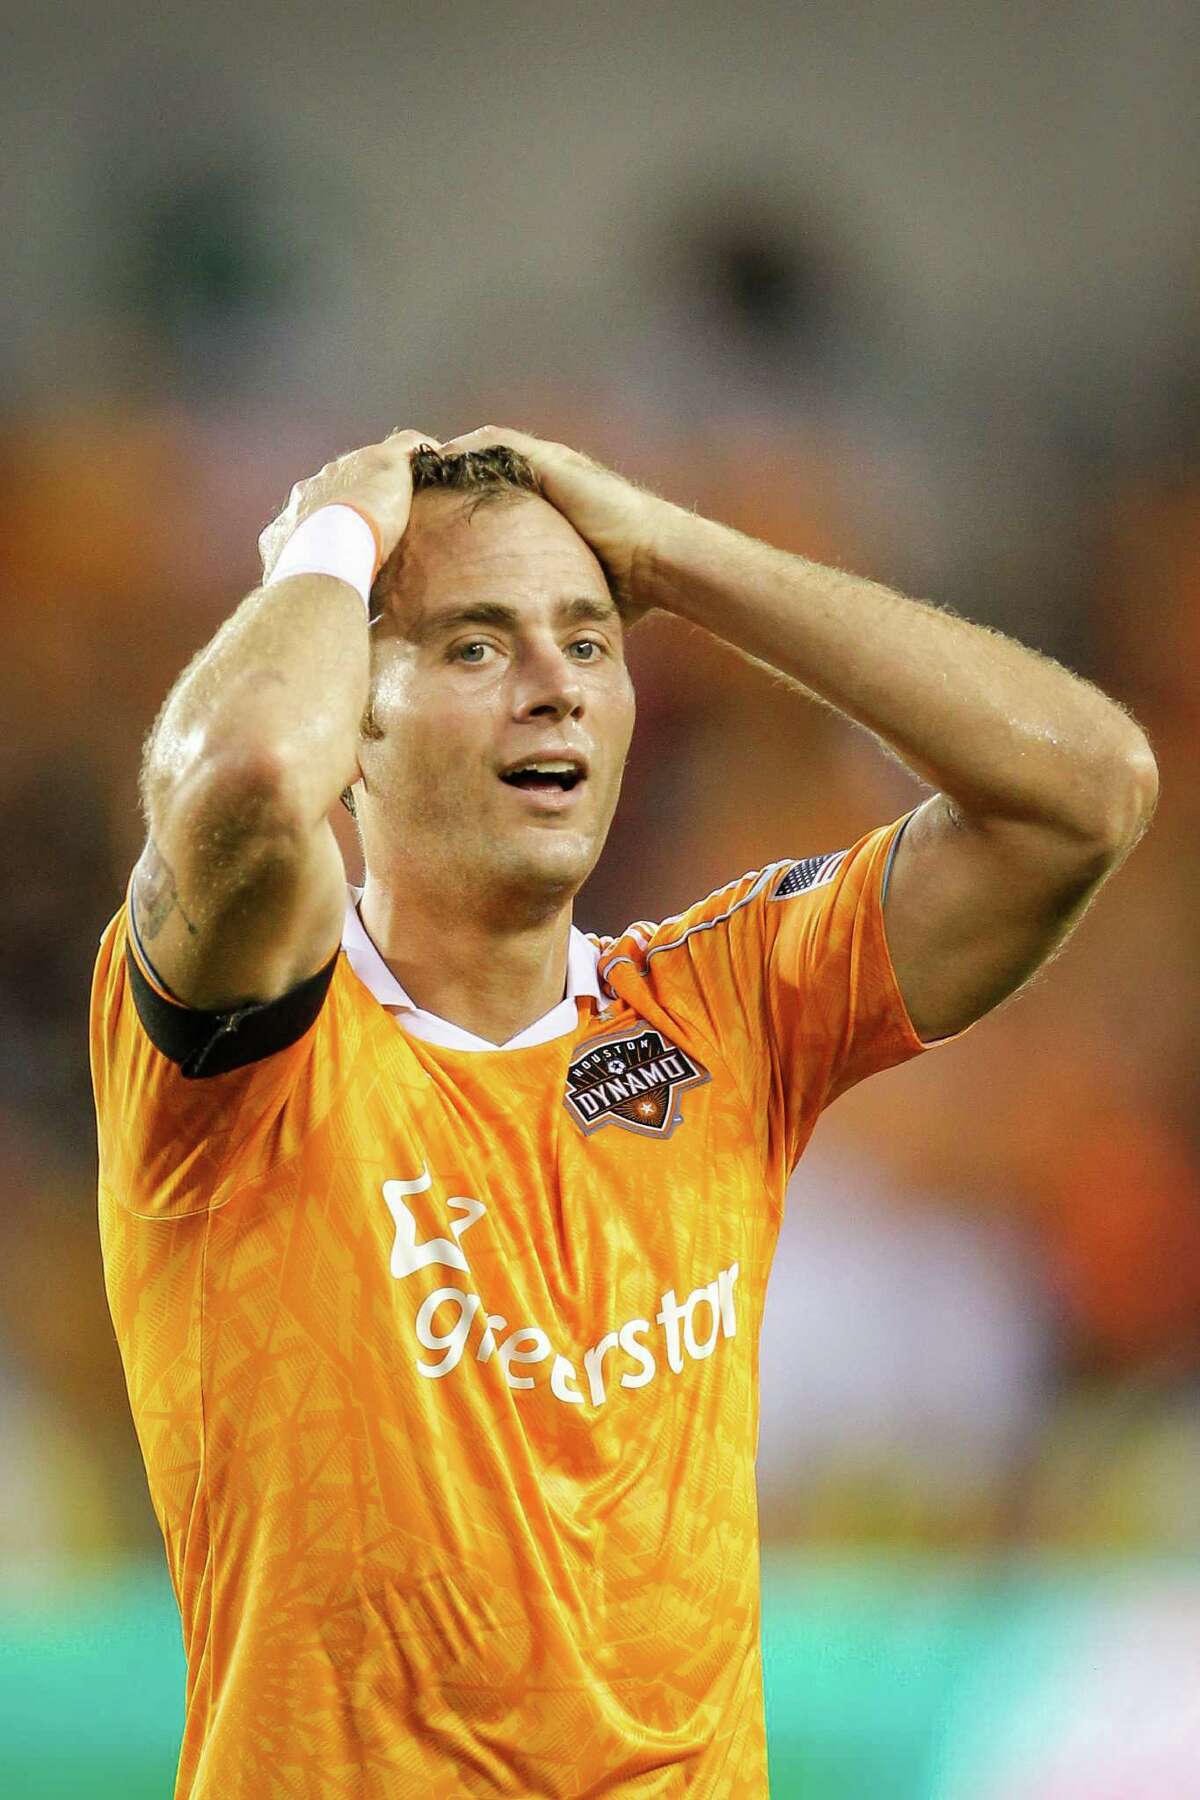 Brad Davis has been with the Dynamo since they took up residence in Houston in 2006 but could be on his way to Sporting Kansas City via a trade during the offseason.